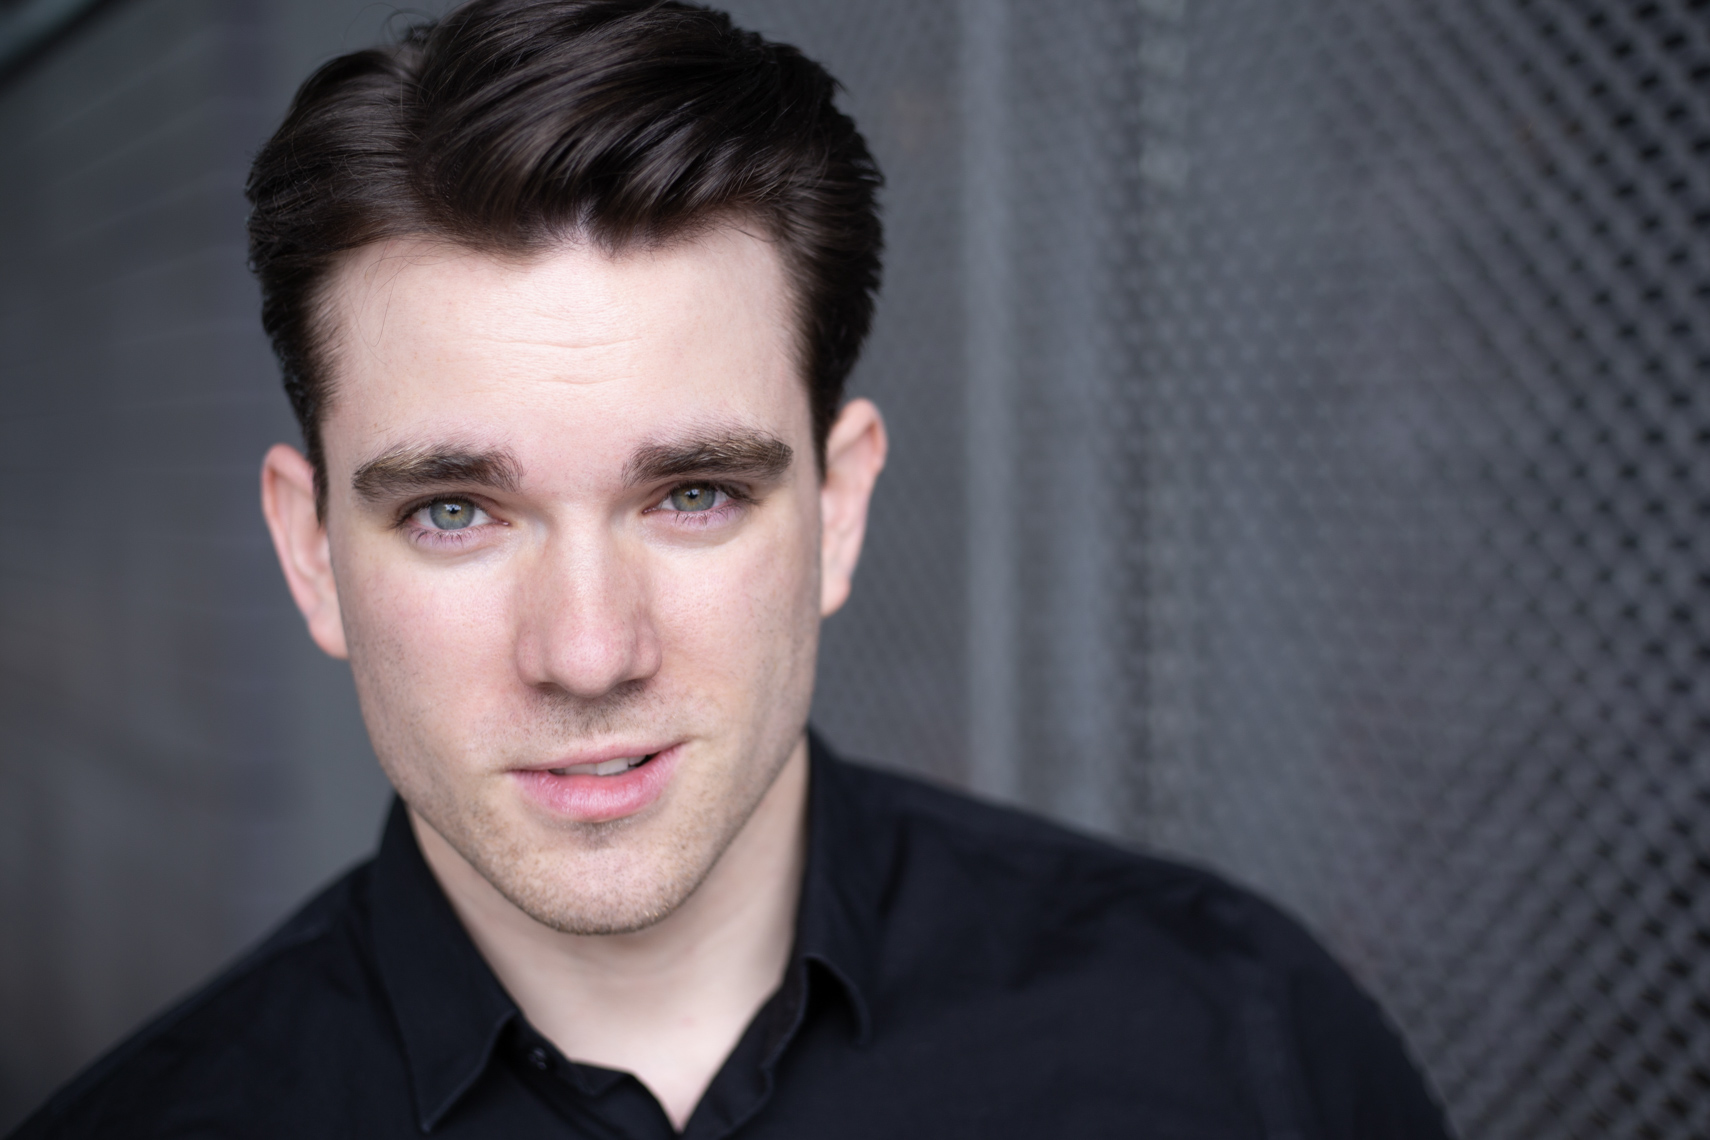 White Male Actor NYC Headshots Best Photographer NYC Theatre